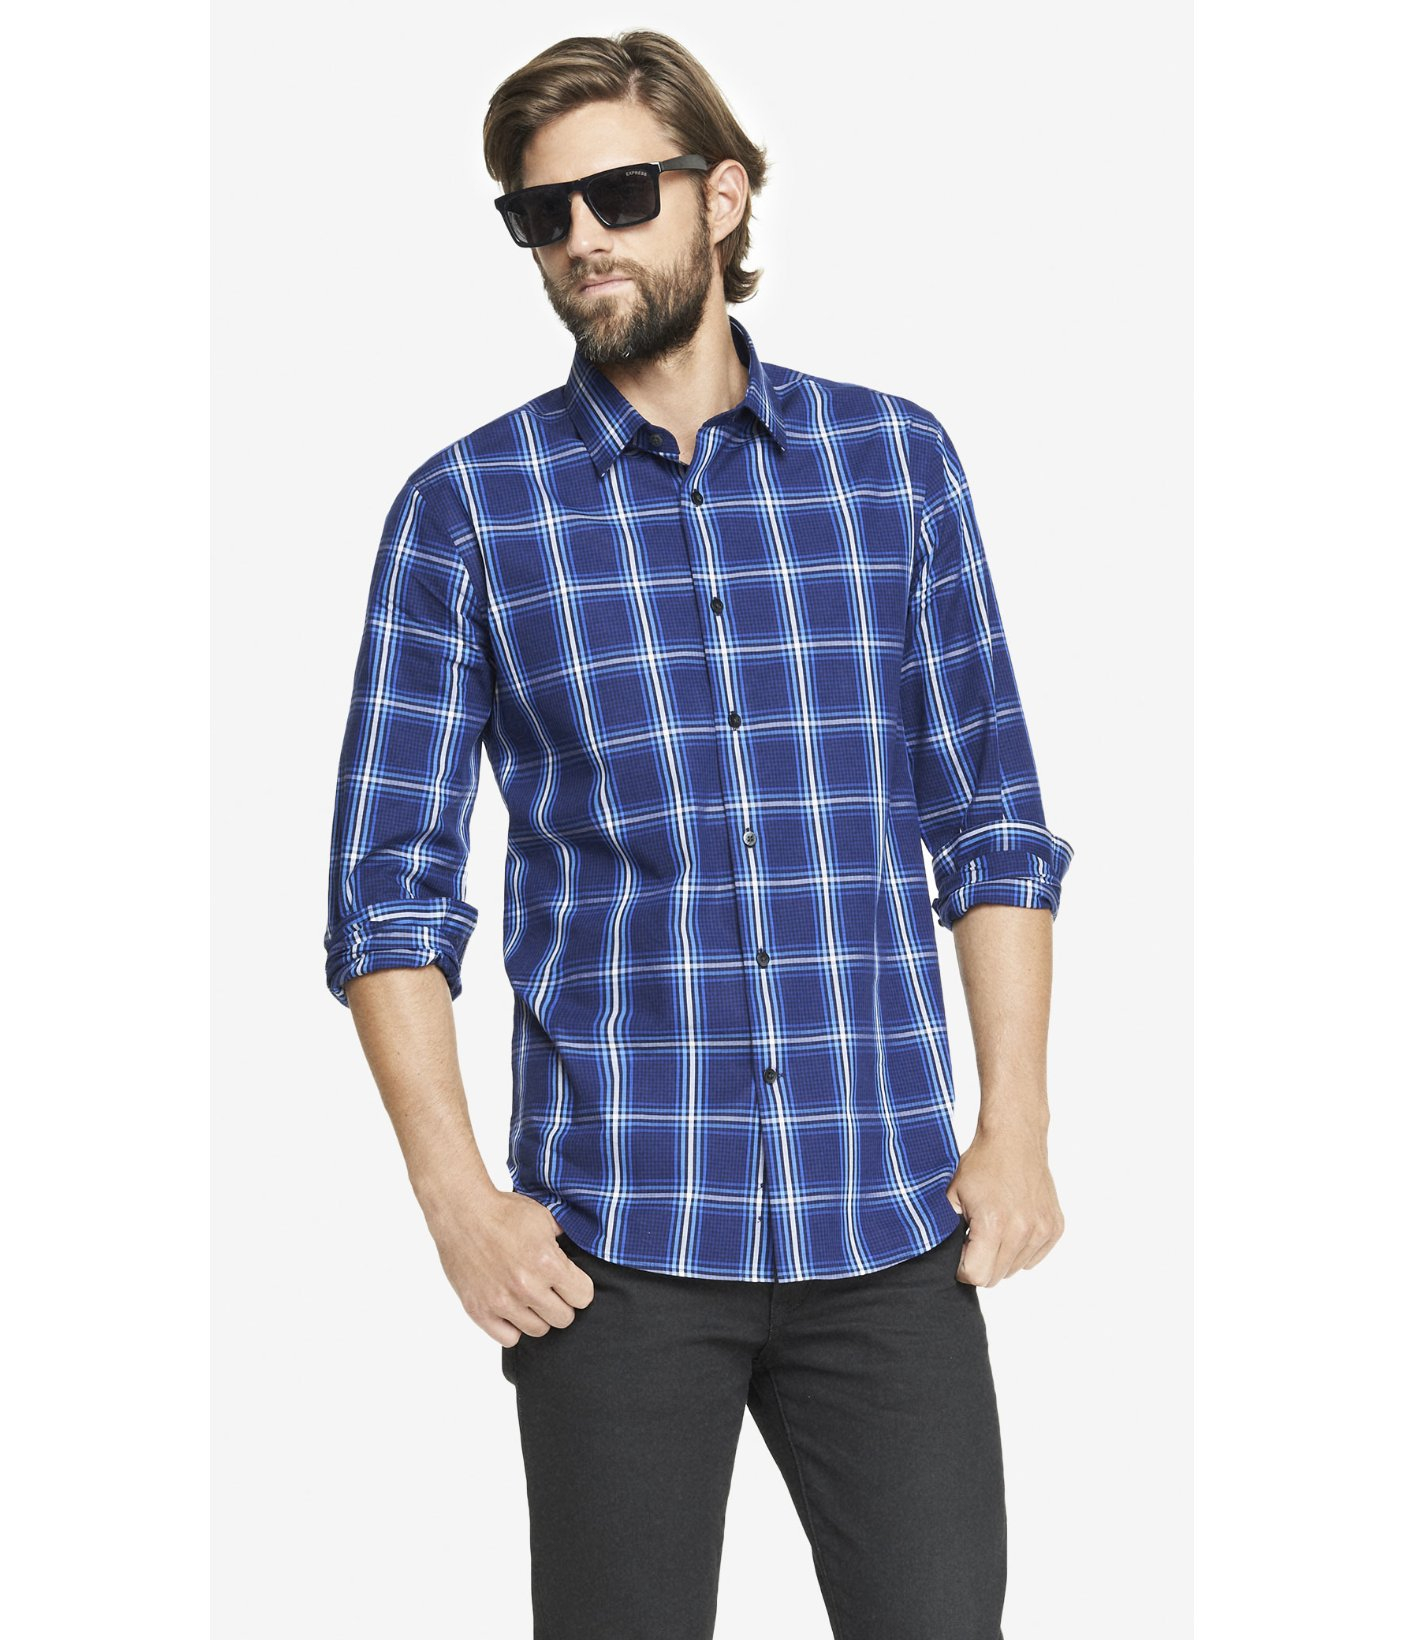 Shop blue dress shirt at Neiman Marcus, where you will find free shipping on the latest in fashion from top designers.